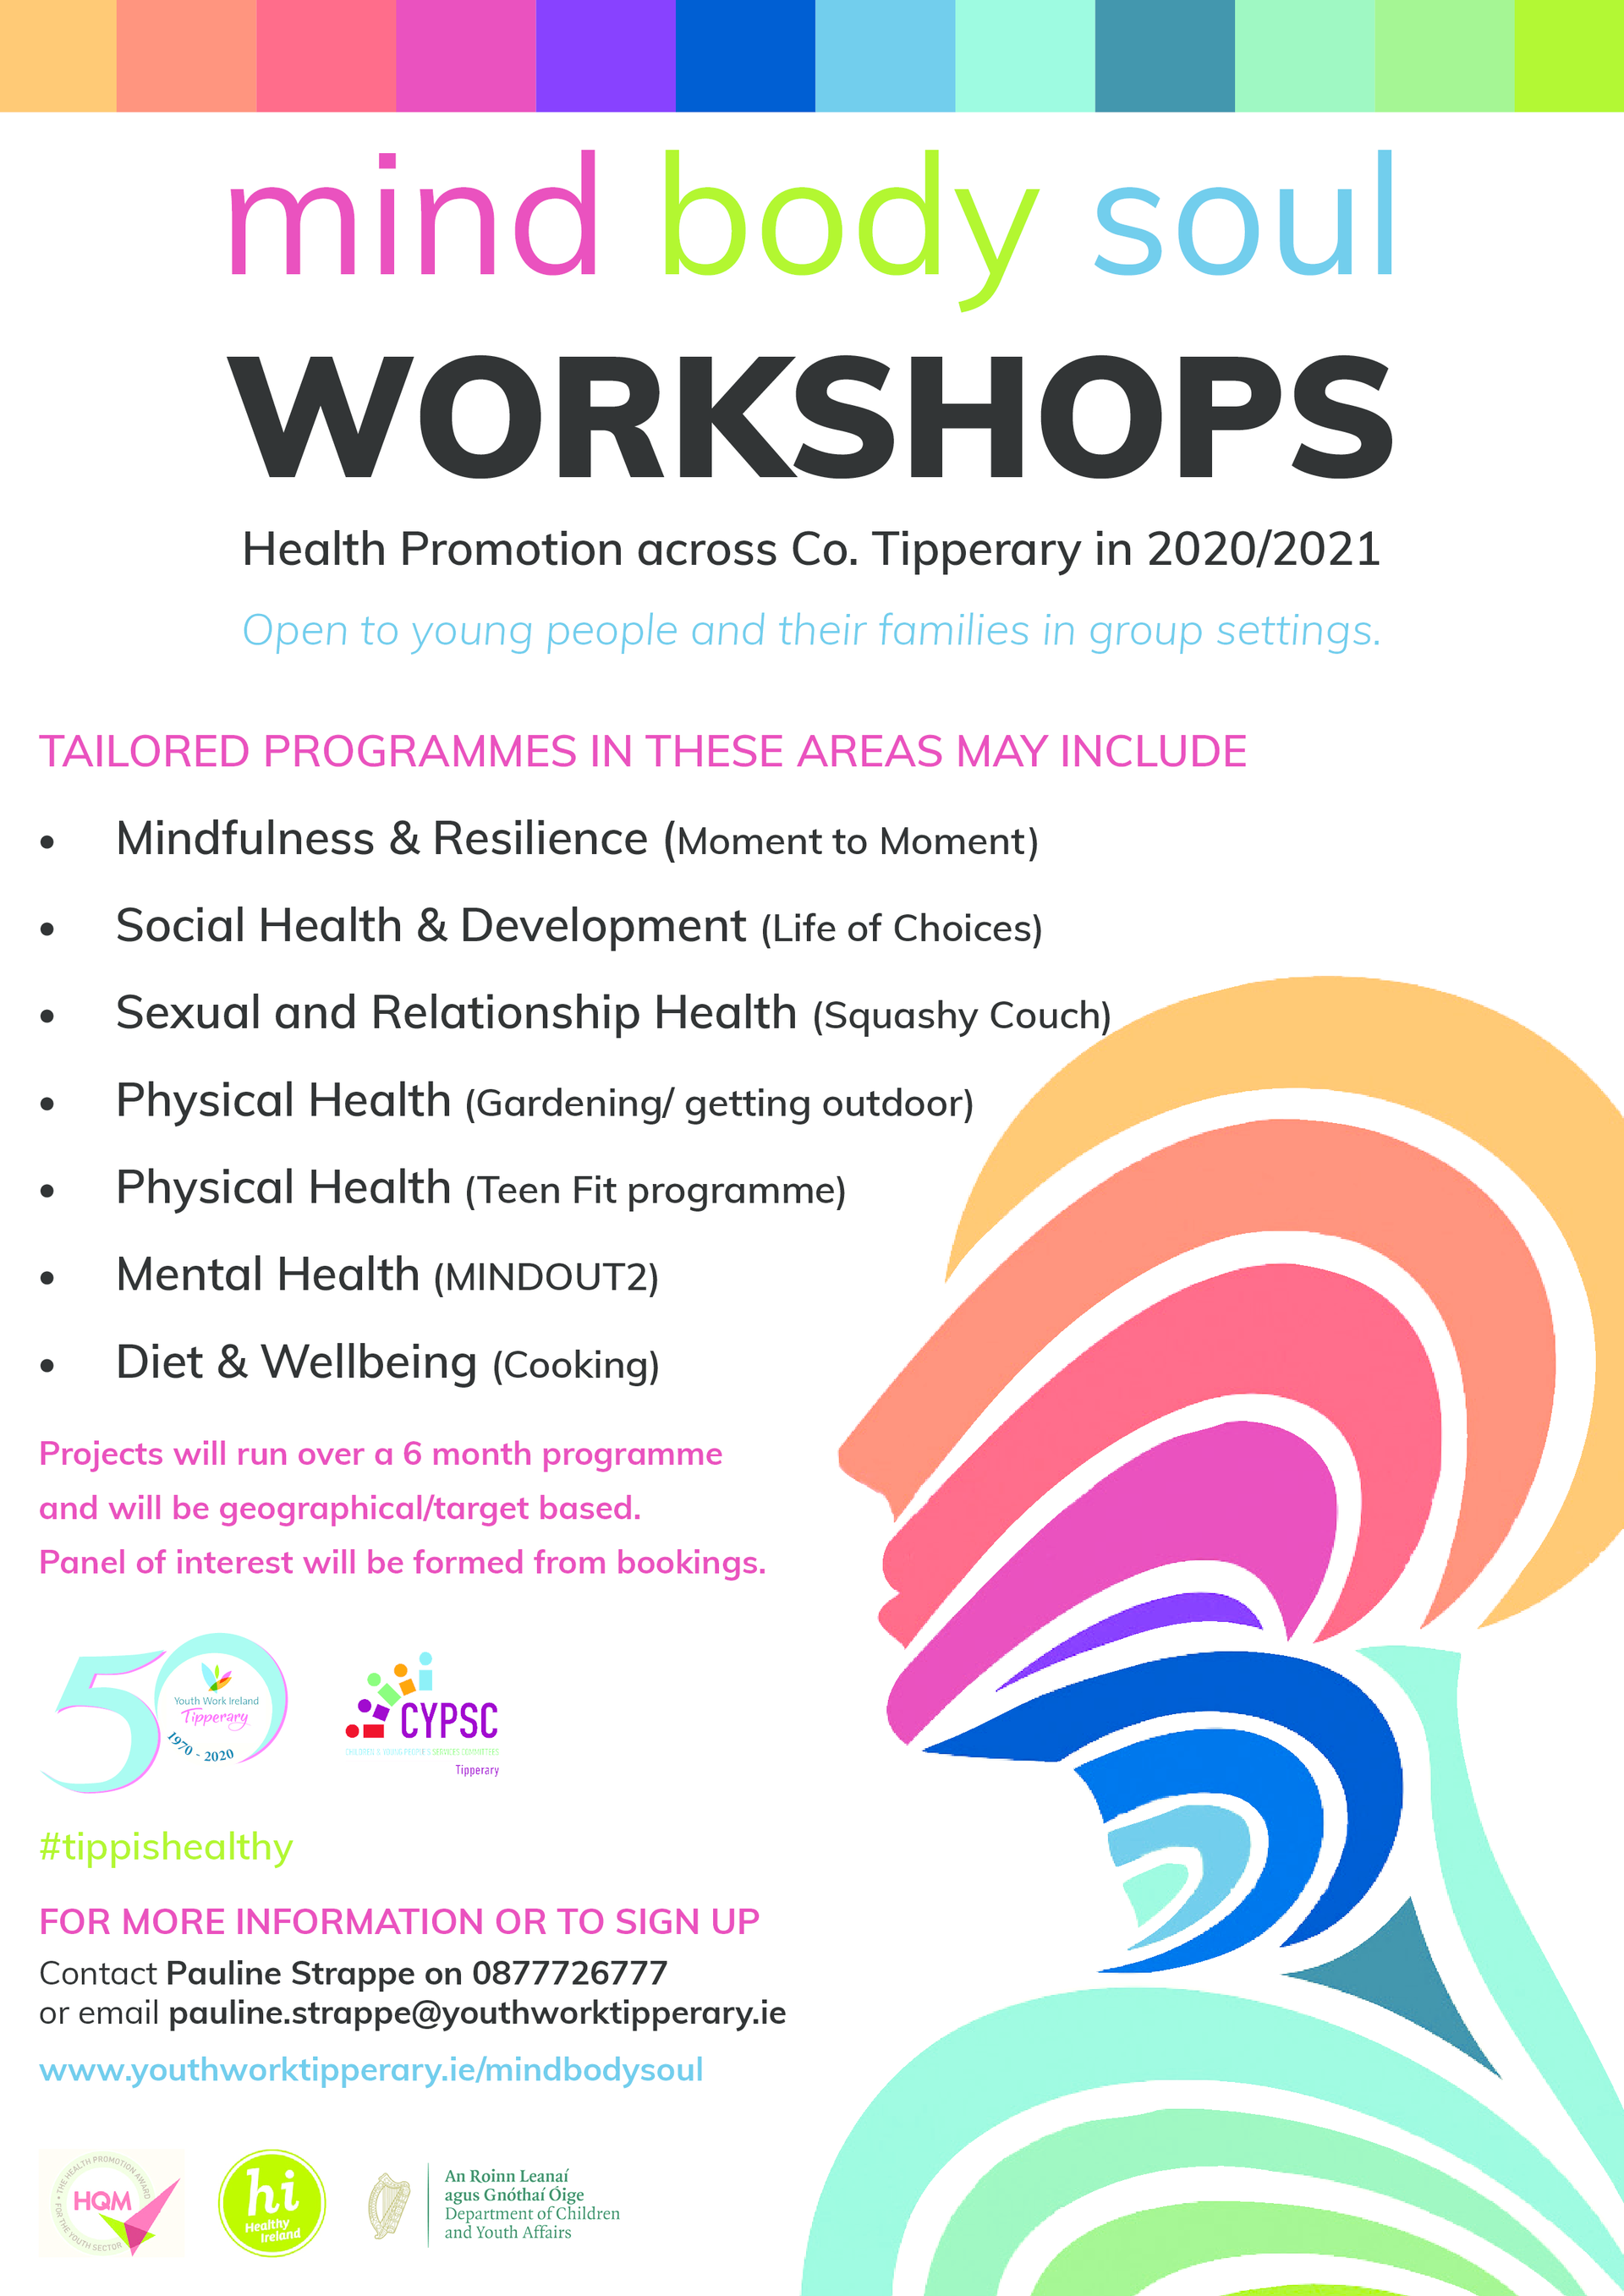 mind body soul WORKSHOPS Open to young people and their families in group settings. For more info Contact Pauline on 0877726777 or pauline.strappe@youthworktipperary.ie www.youthworktipperary.ie/mindbodysoul